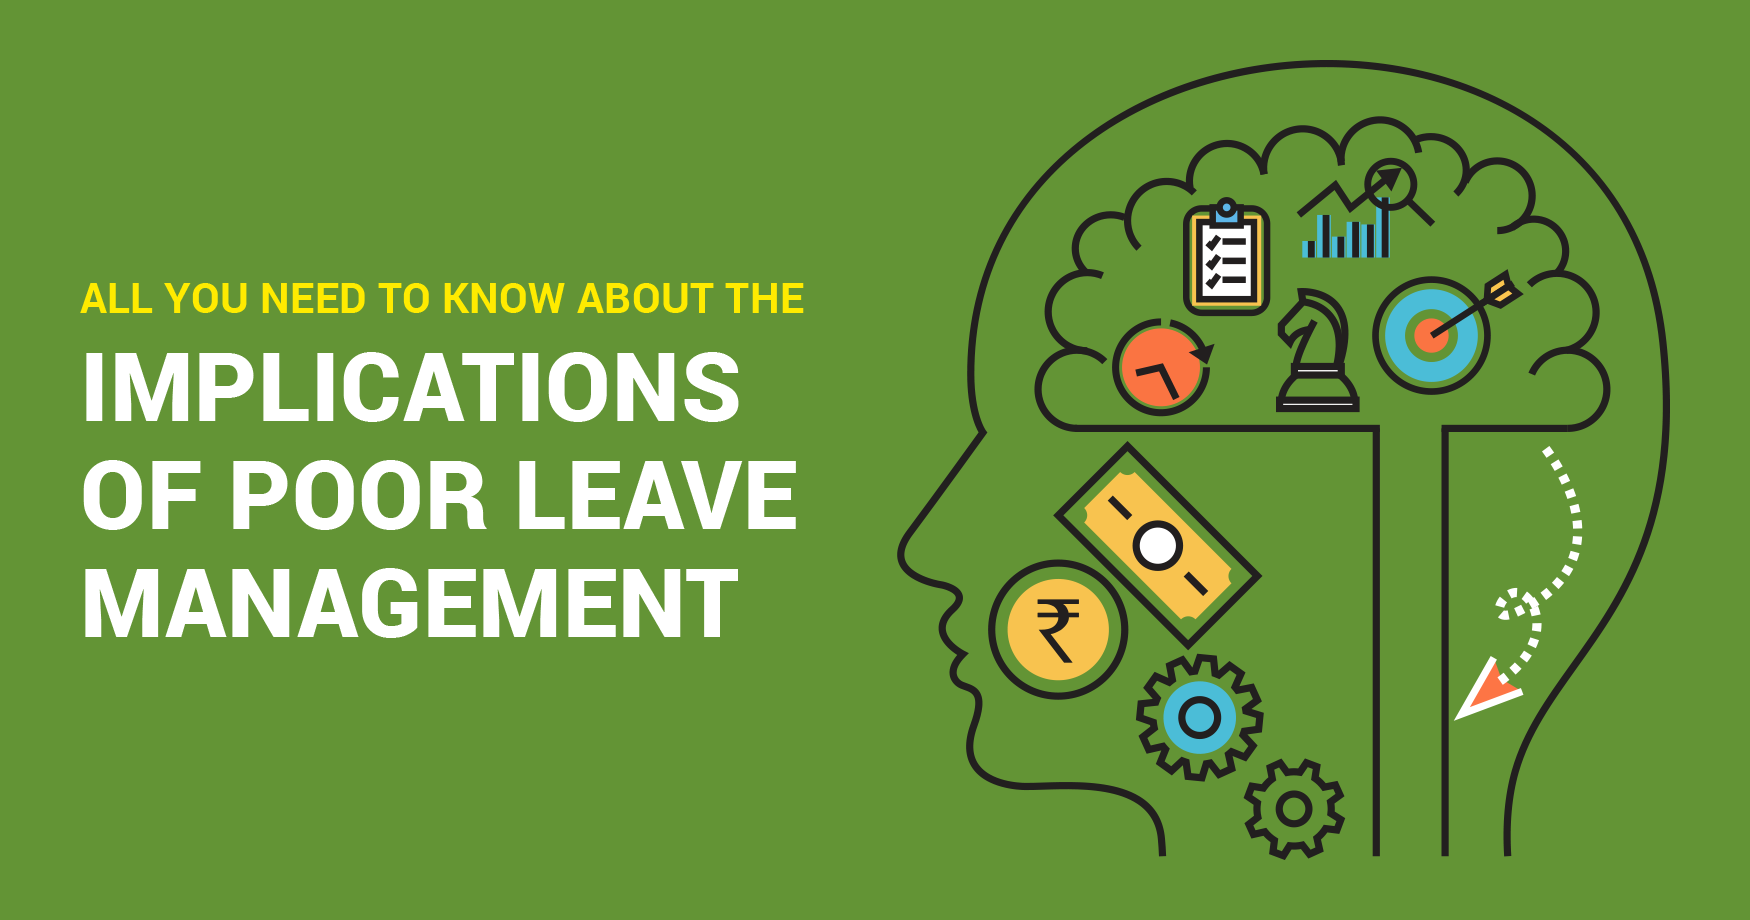 All you need to know about the implications of poor leave management